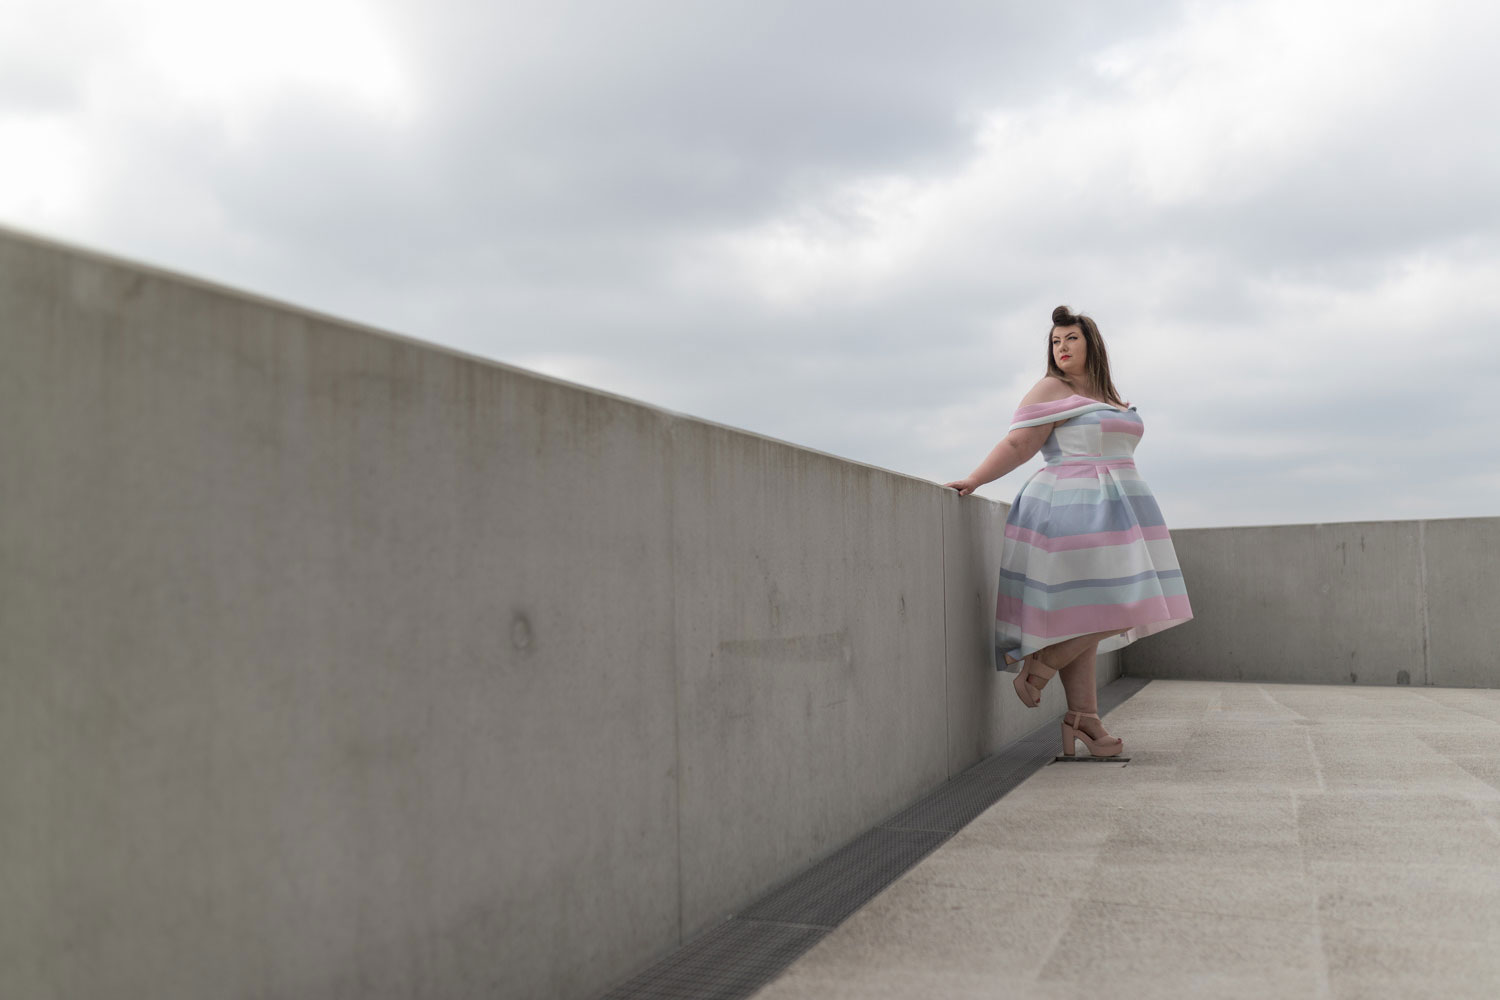 asos curve wedding dress plus size grande taille curvy blogger